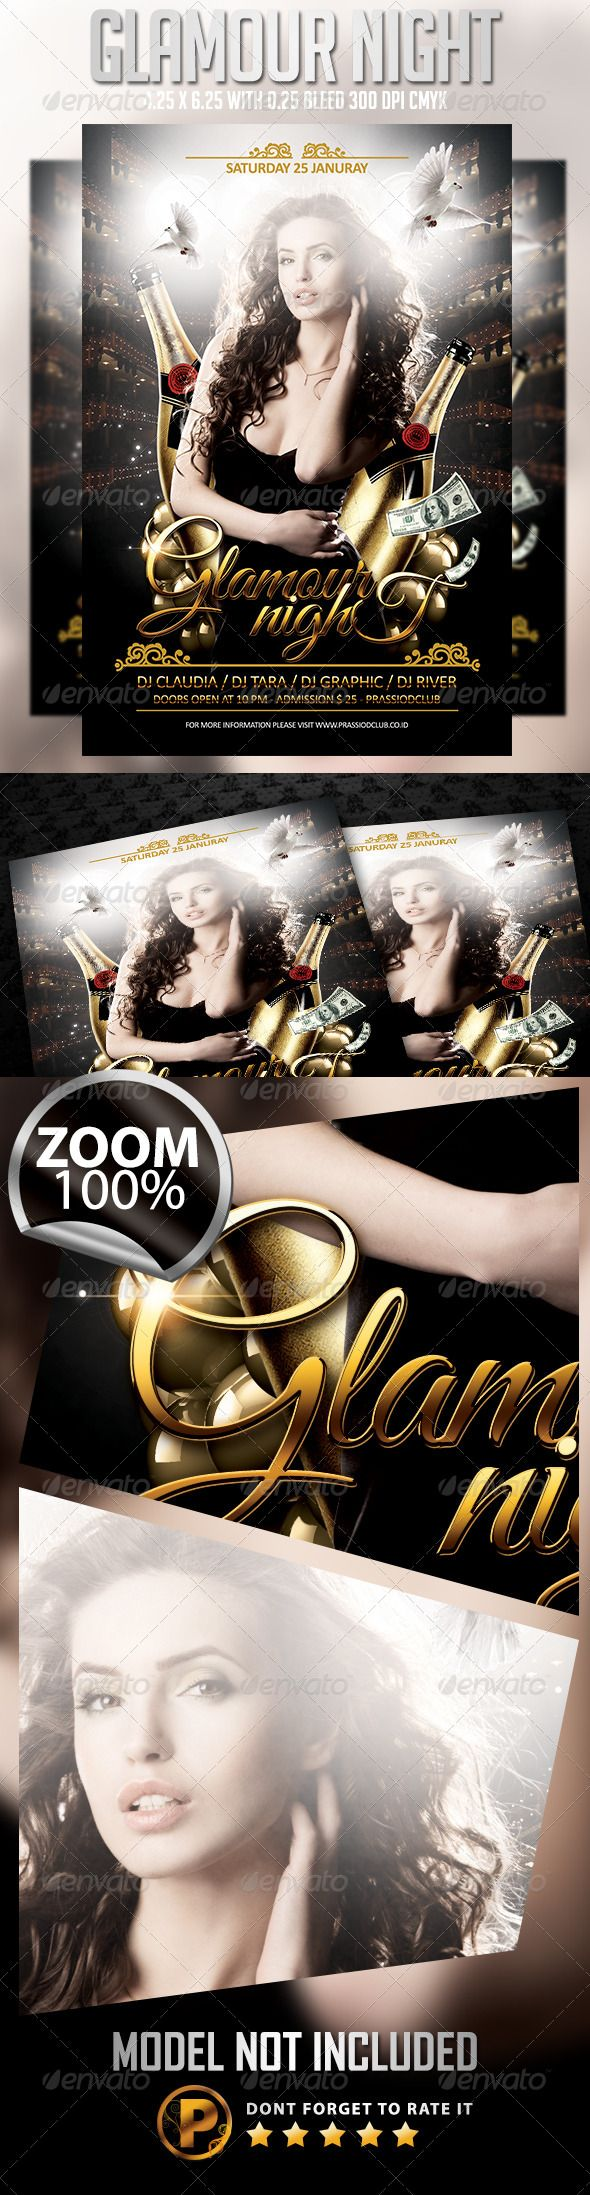 Glamour Night Flyer Template Flyer template, Flyer